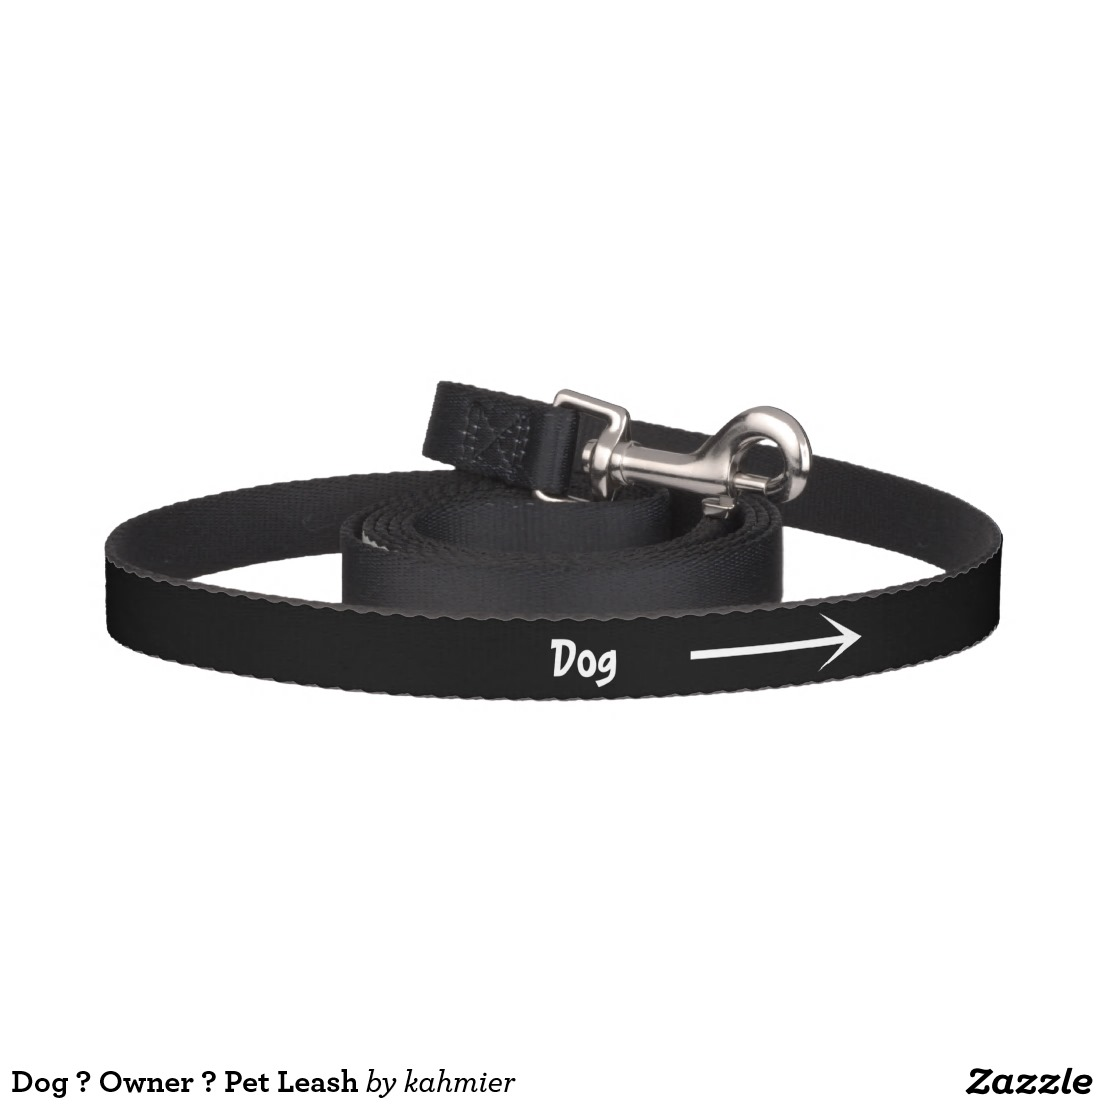 Dog ? Owner ? Pet Leash